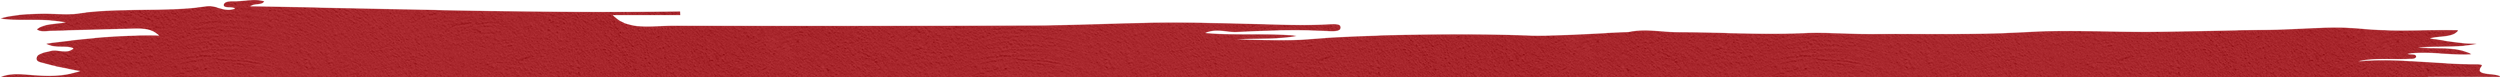 Red Wall Paint Texture - Kelly's Diner, Mountain Top, Letterkenny